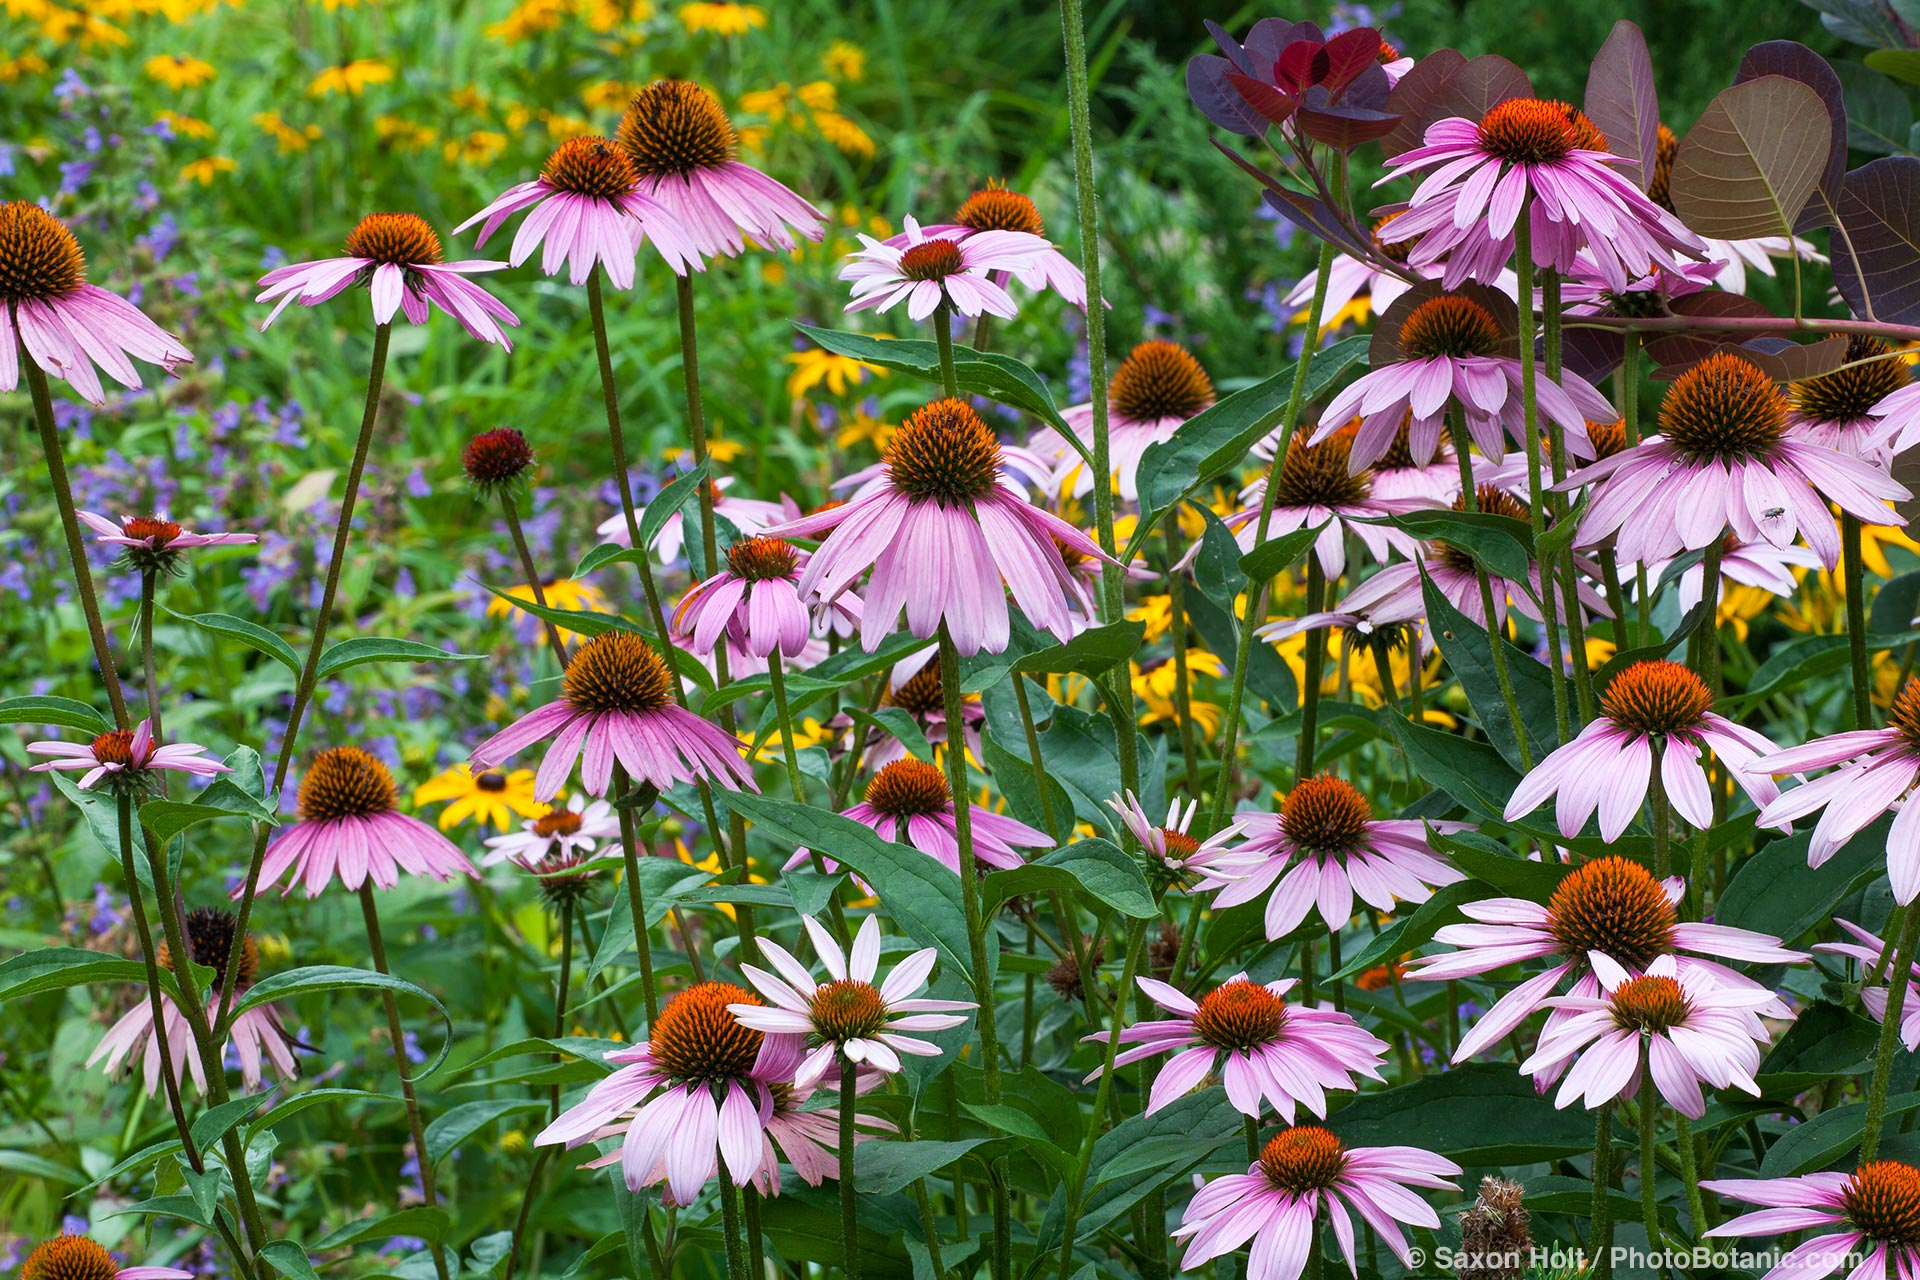 Echinacea purpurea, Purple Cone Flower, native wildflower in Minnesota garden